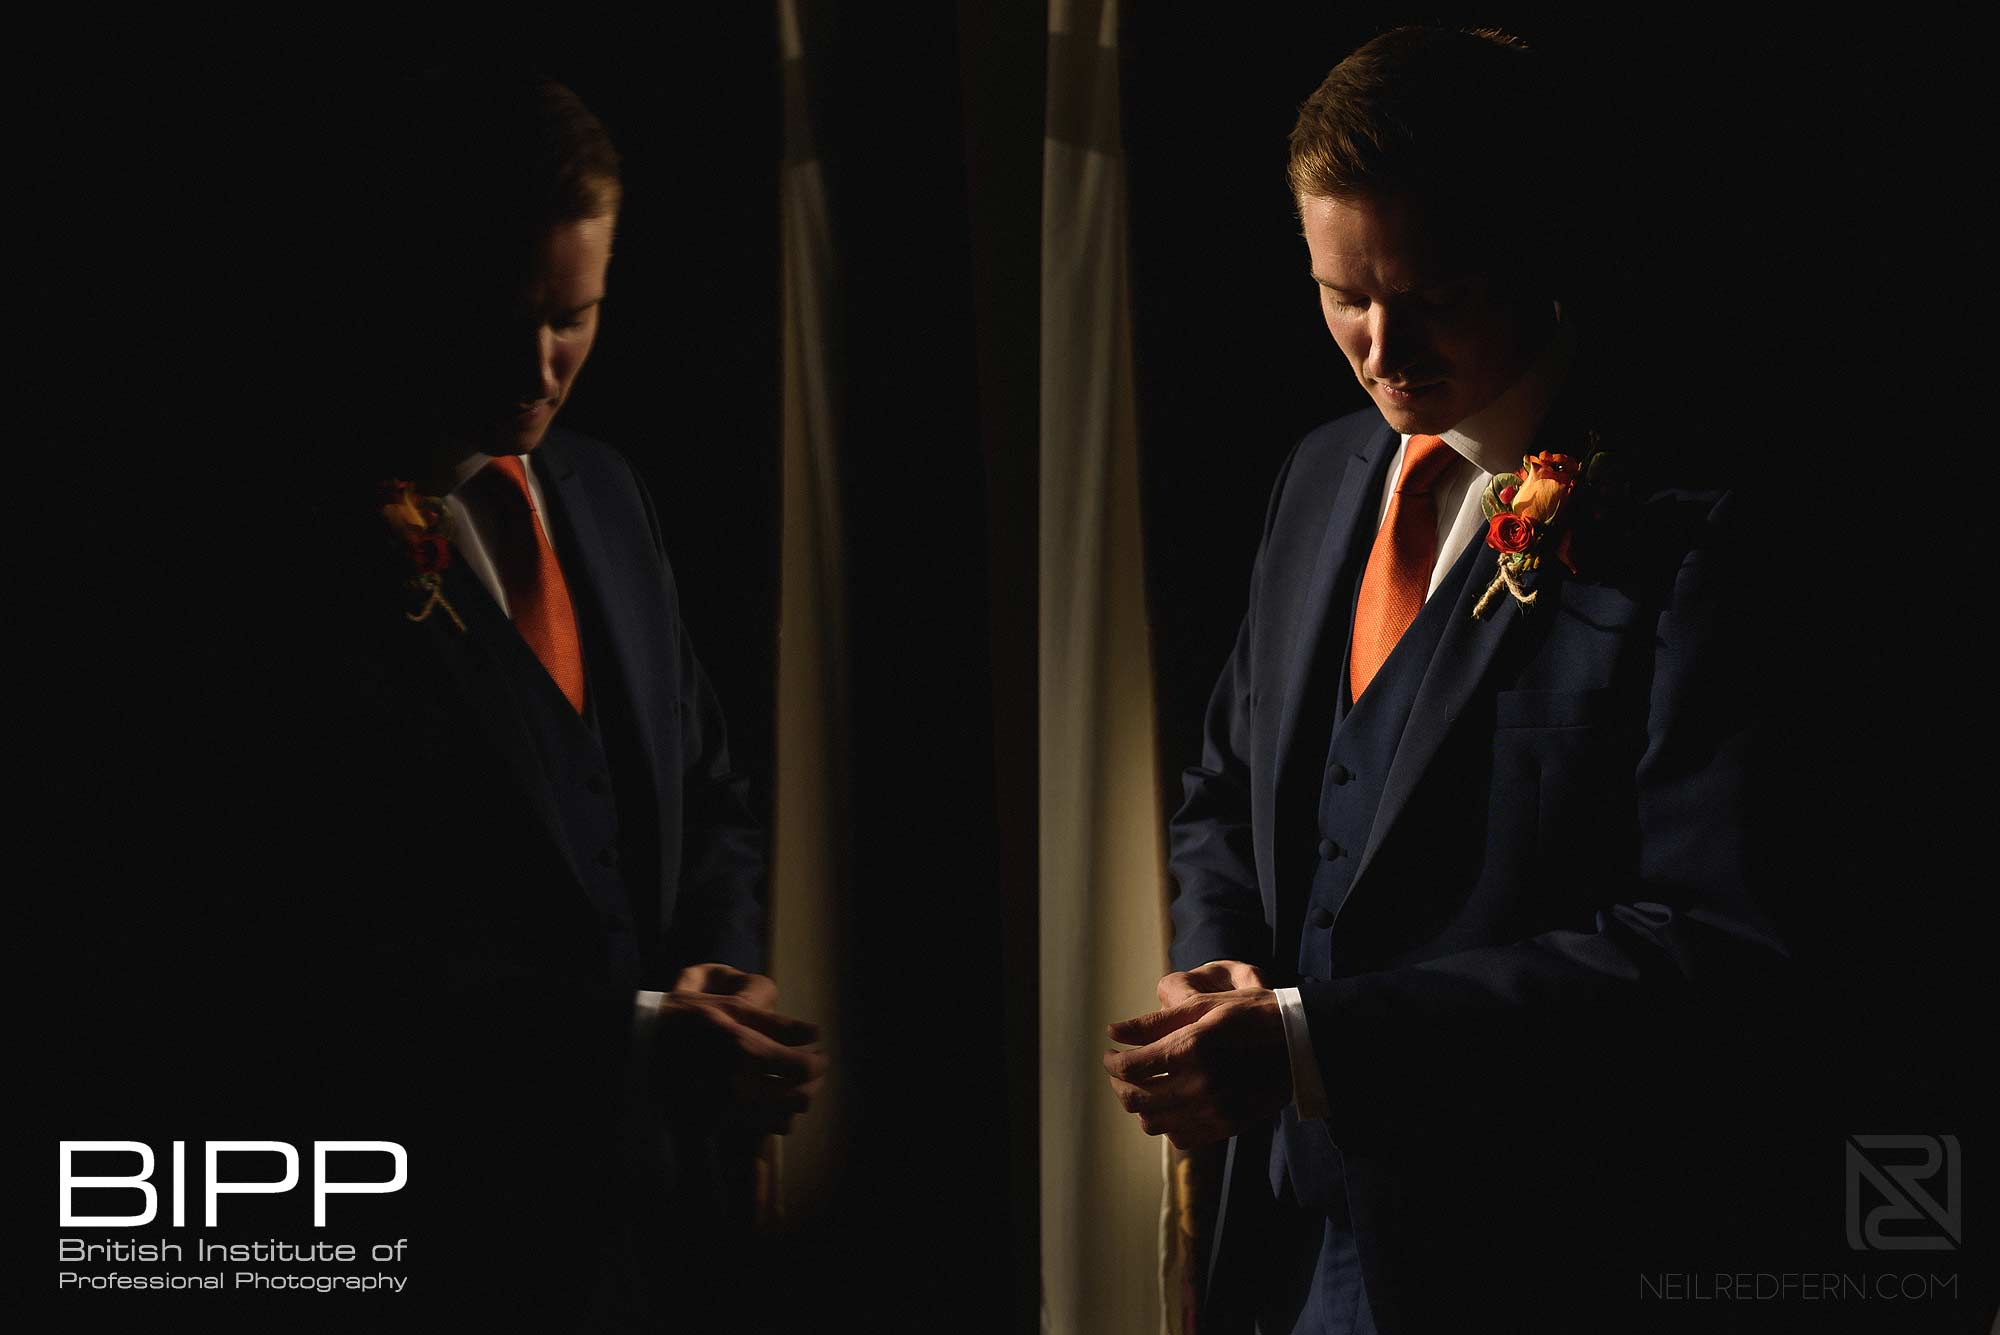 BIPP Gold award photograph of a reflection of groom